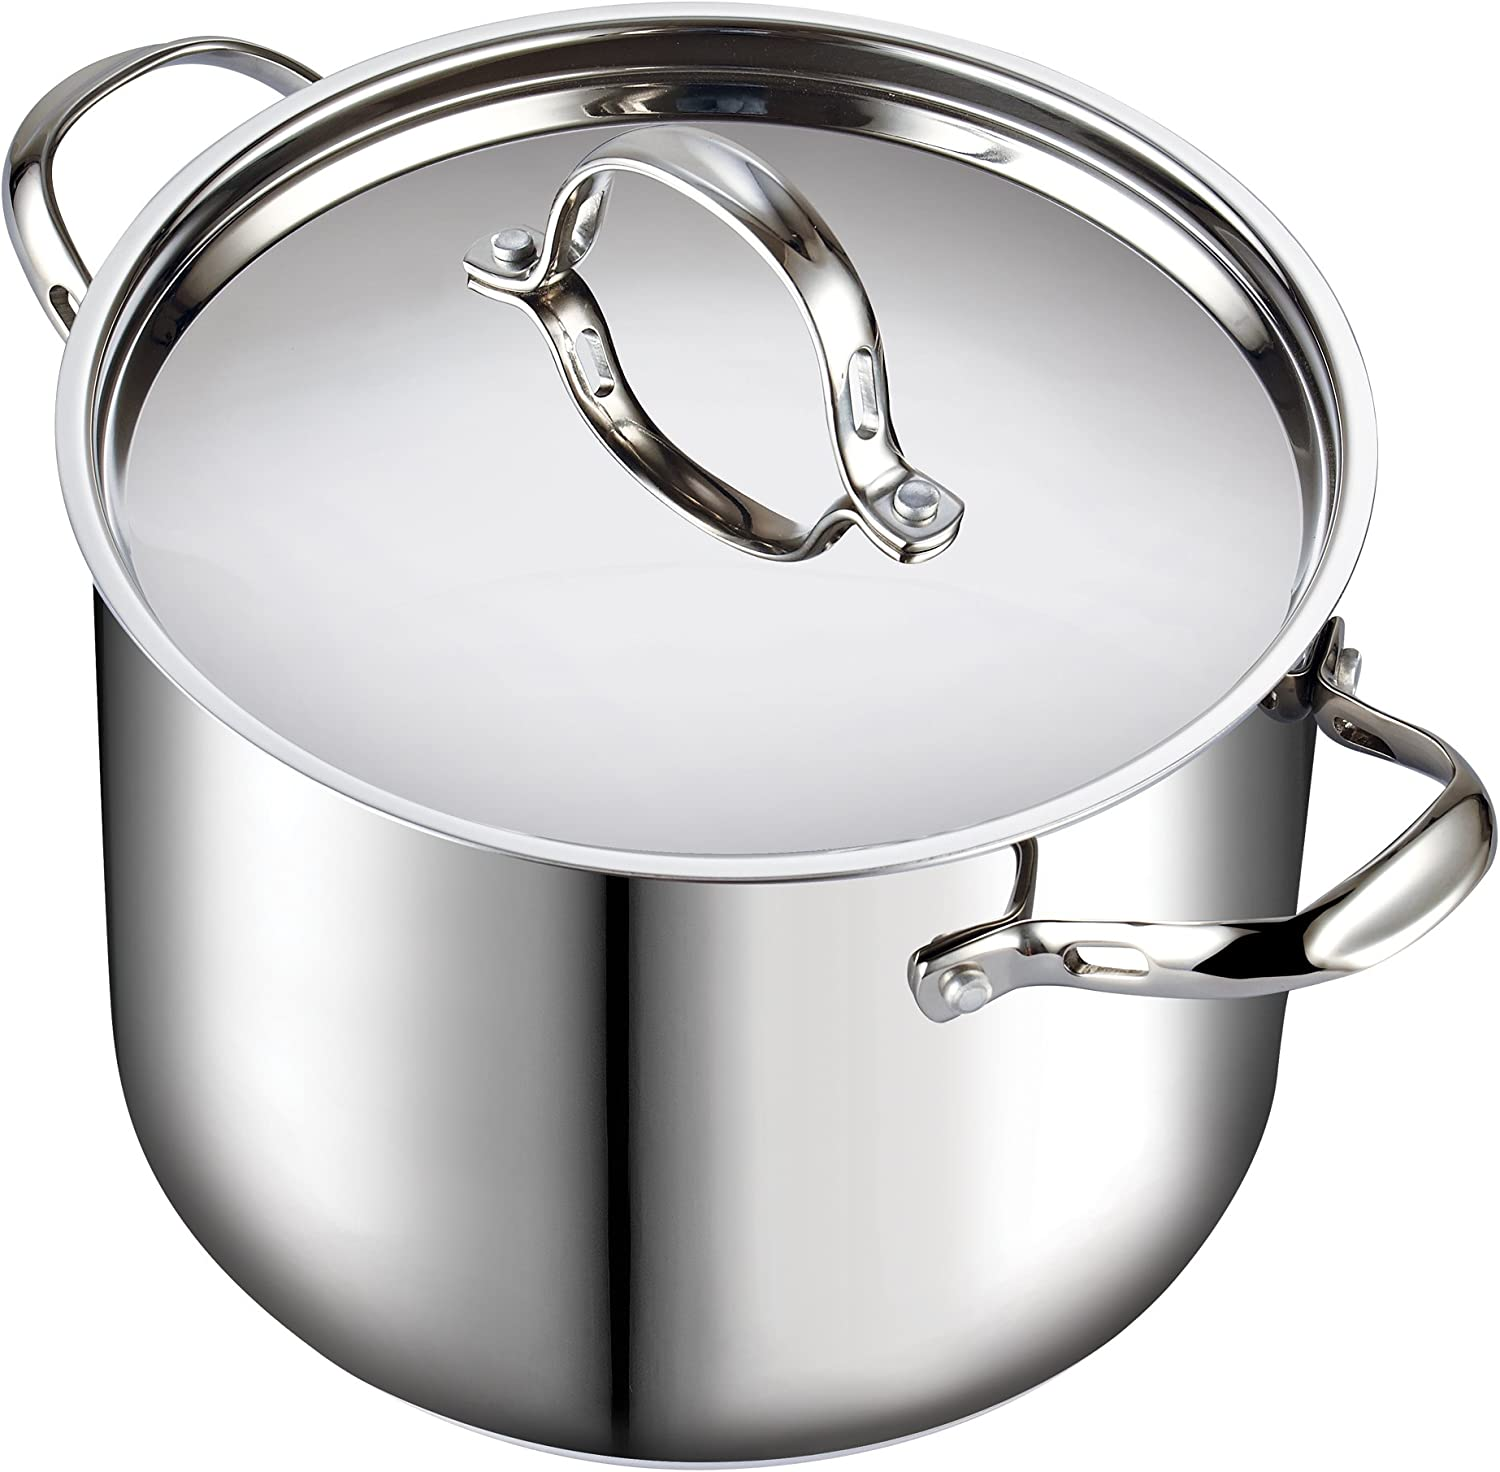 81m6DfRyj L. AC SL1500 The Best Gumbo Pots (Stockpots) for the Money 2021